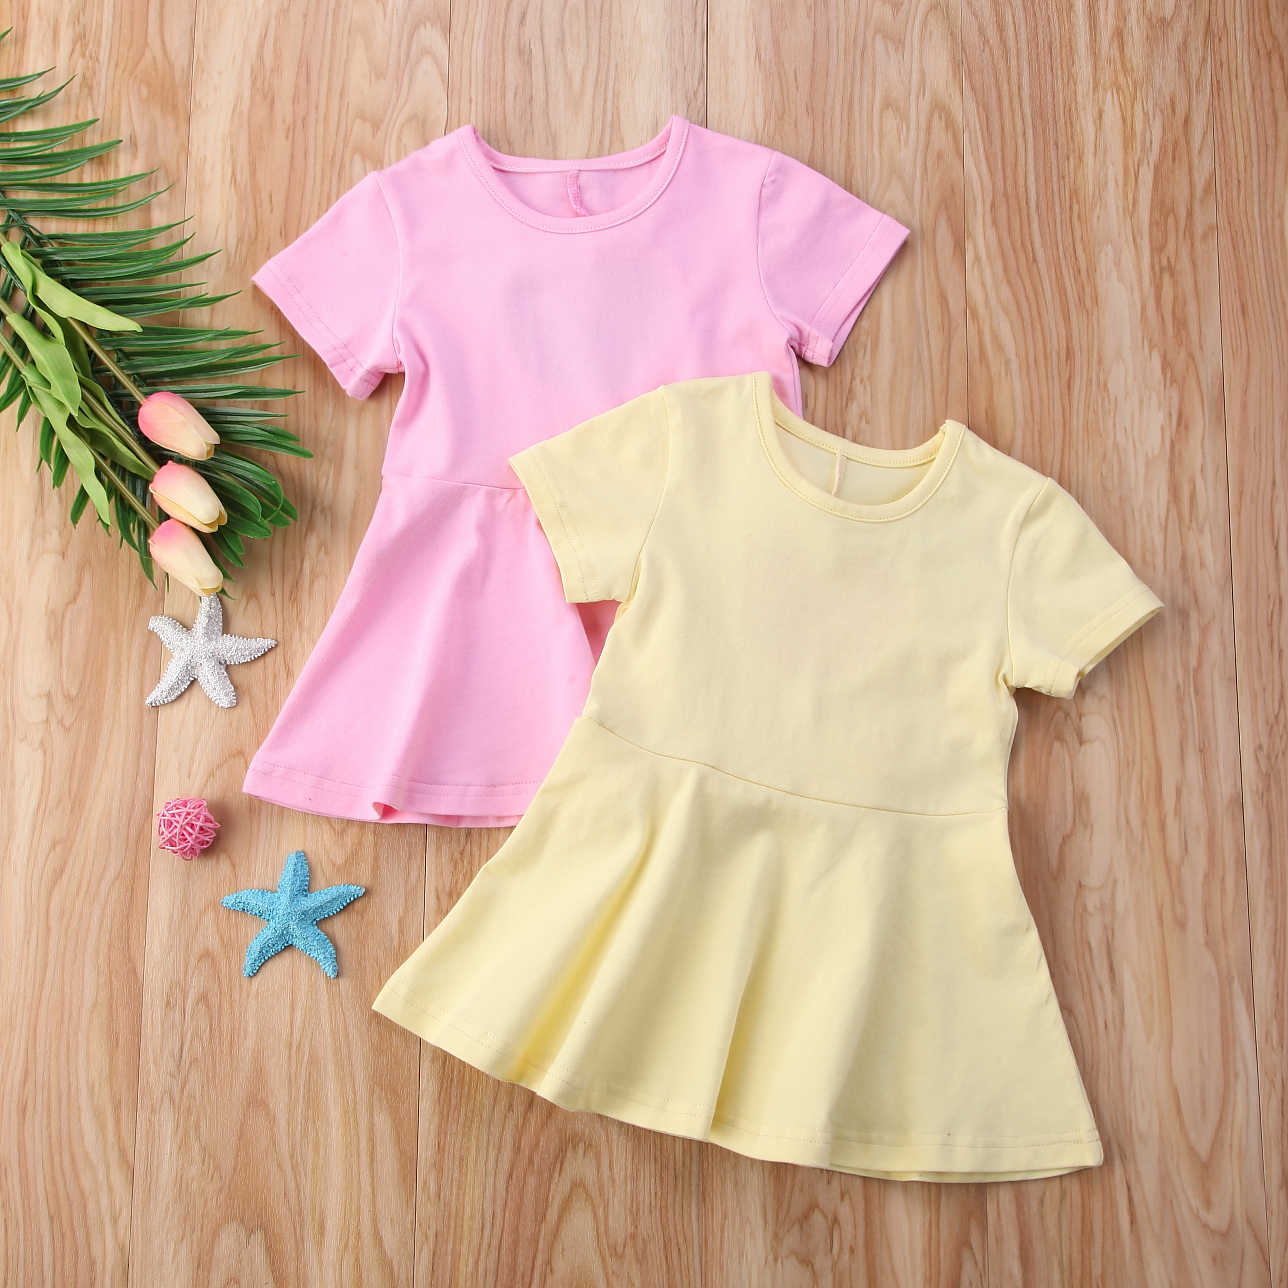 2018 Toddler Kids Baby Girls Solid Backless Twins Matching Party Dresses  Casual Summer Sundress Clothing 3ac67f62ef65